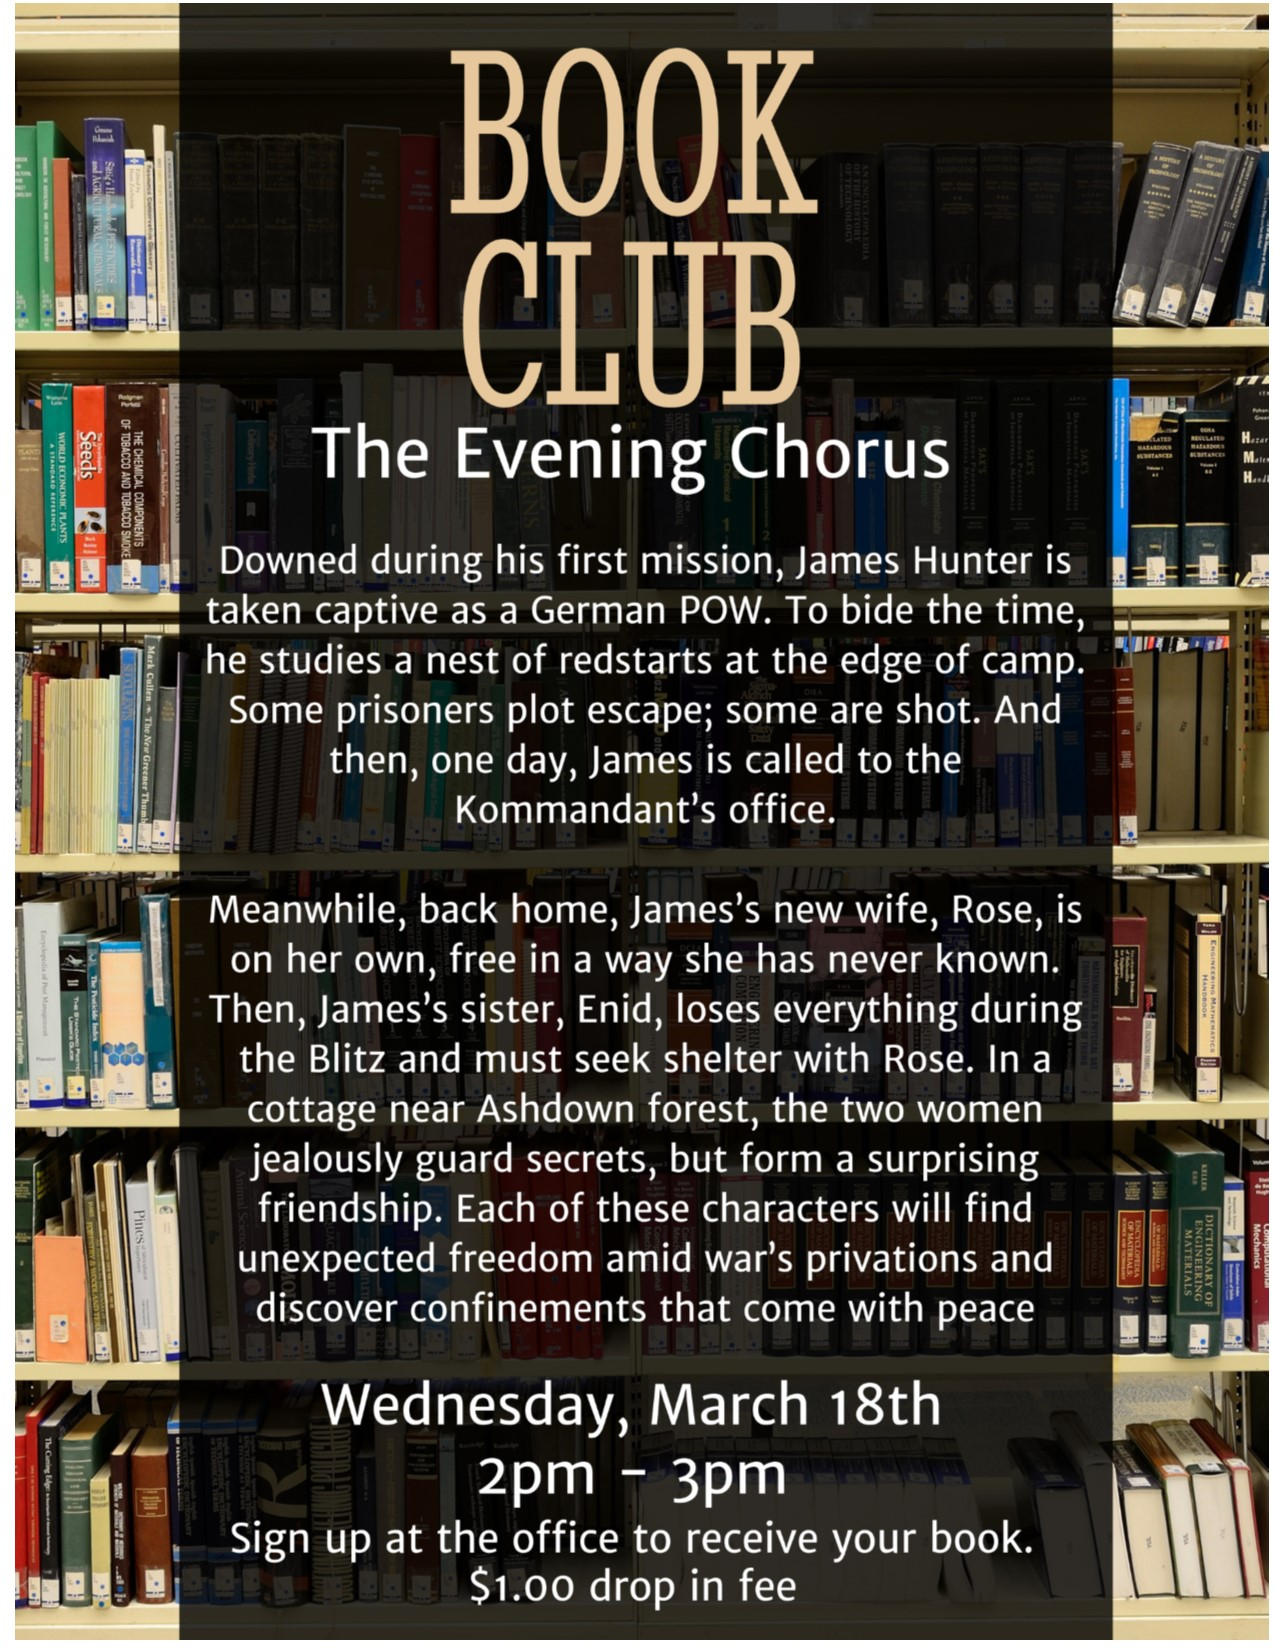 Book Club - The Evening Chorus